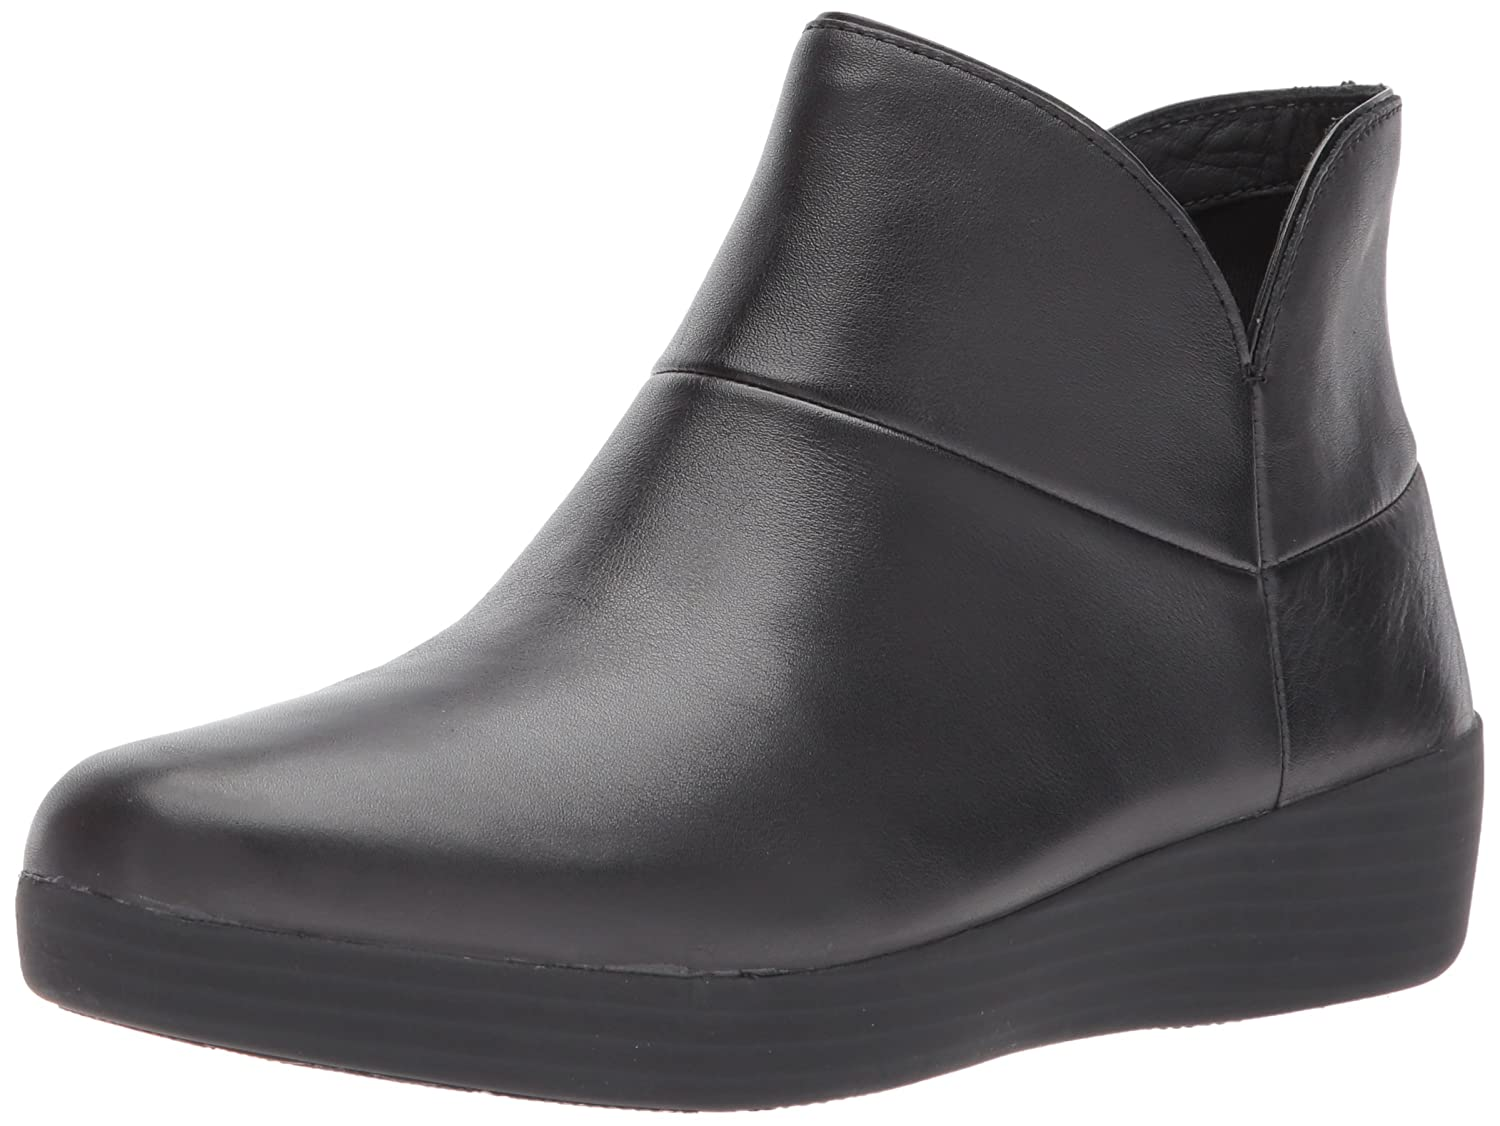 FitFlop Women's Supermod Ii Leather Ankle Boot B0756FRN1H 8.5 B(M) US|All Black